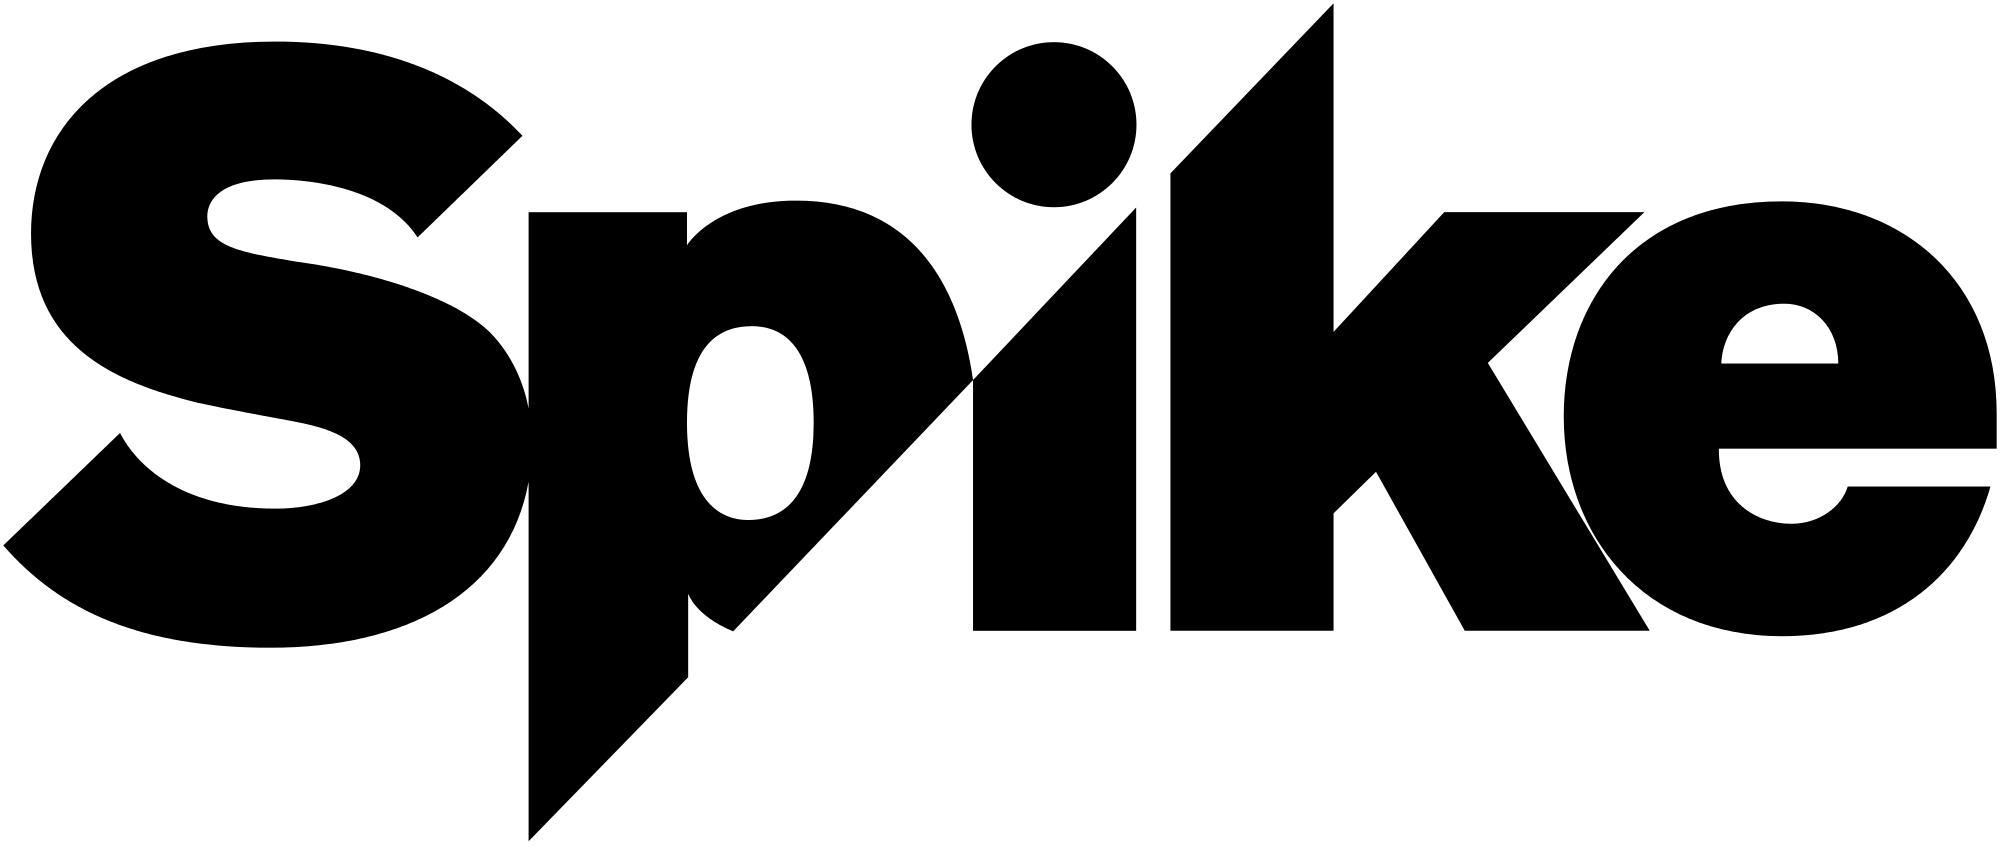 Spike tv logo png. File svg wikimedia commons